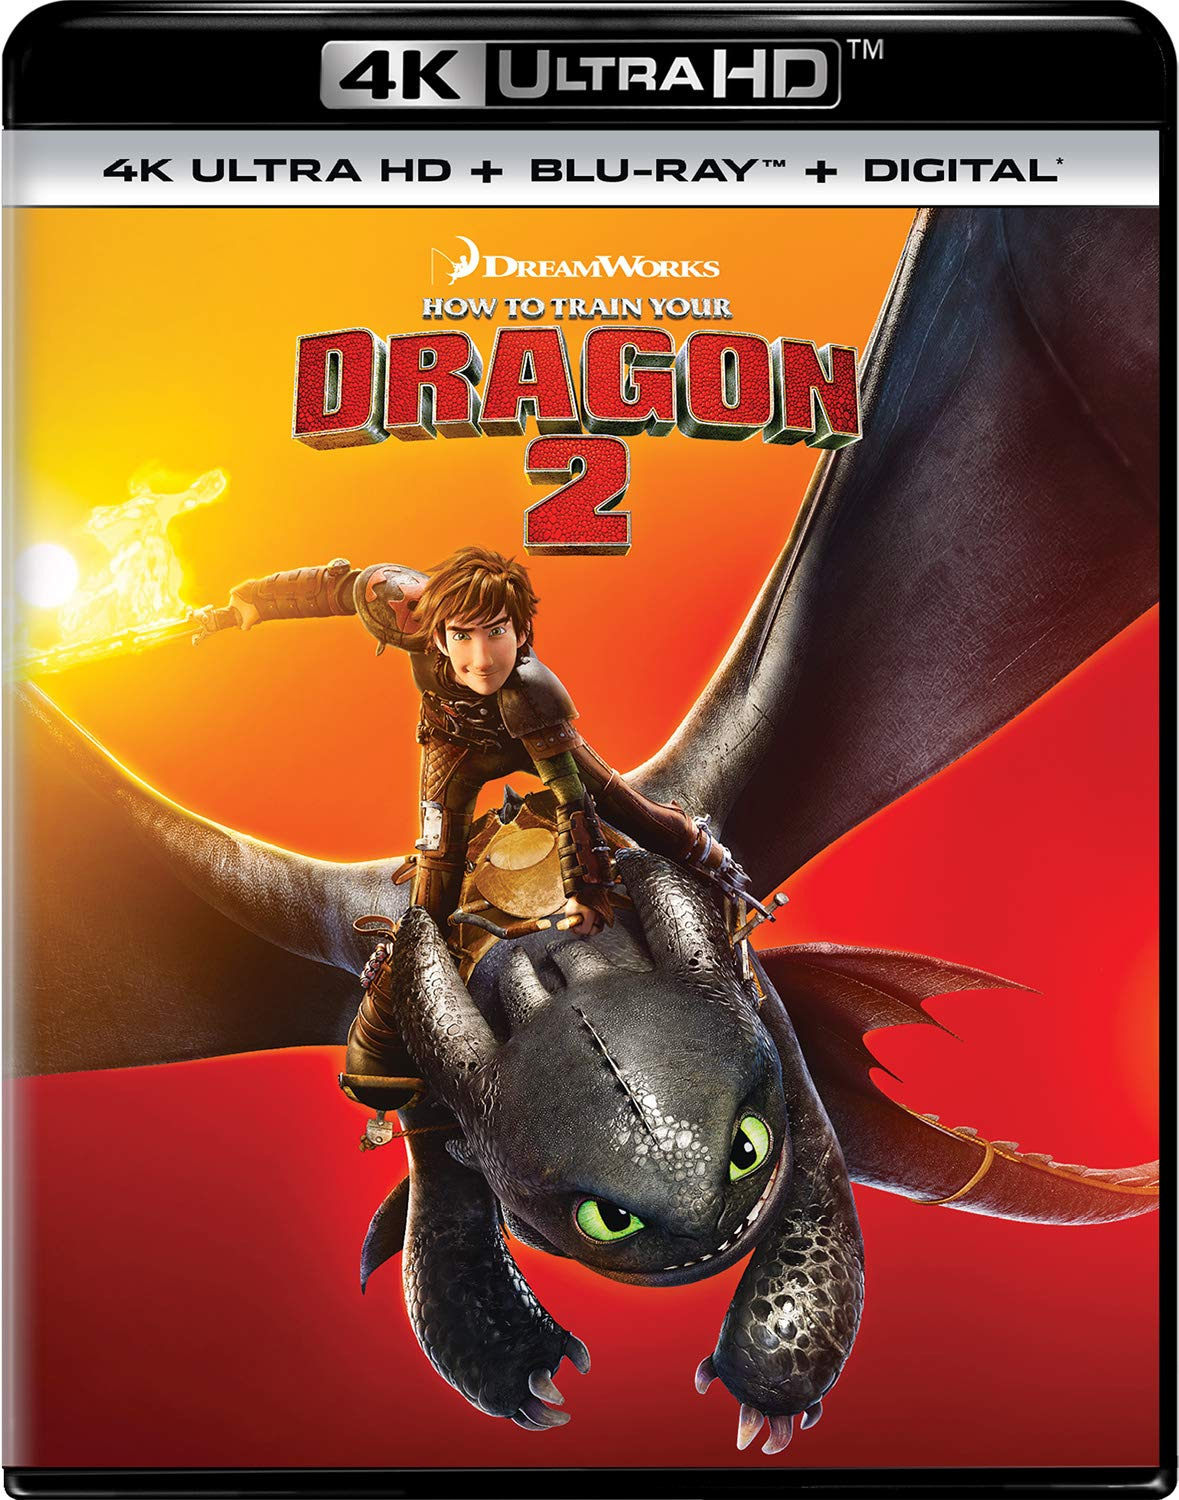 4K Blu-ray : How To Train Your Dragon 2 (With Blu-ray, 4K Mastering, Digital Copy, 2 Pack)